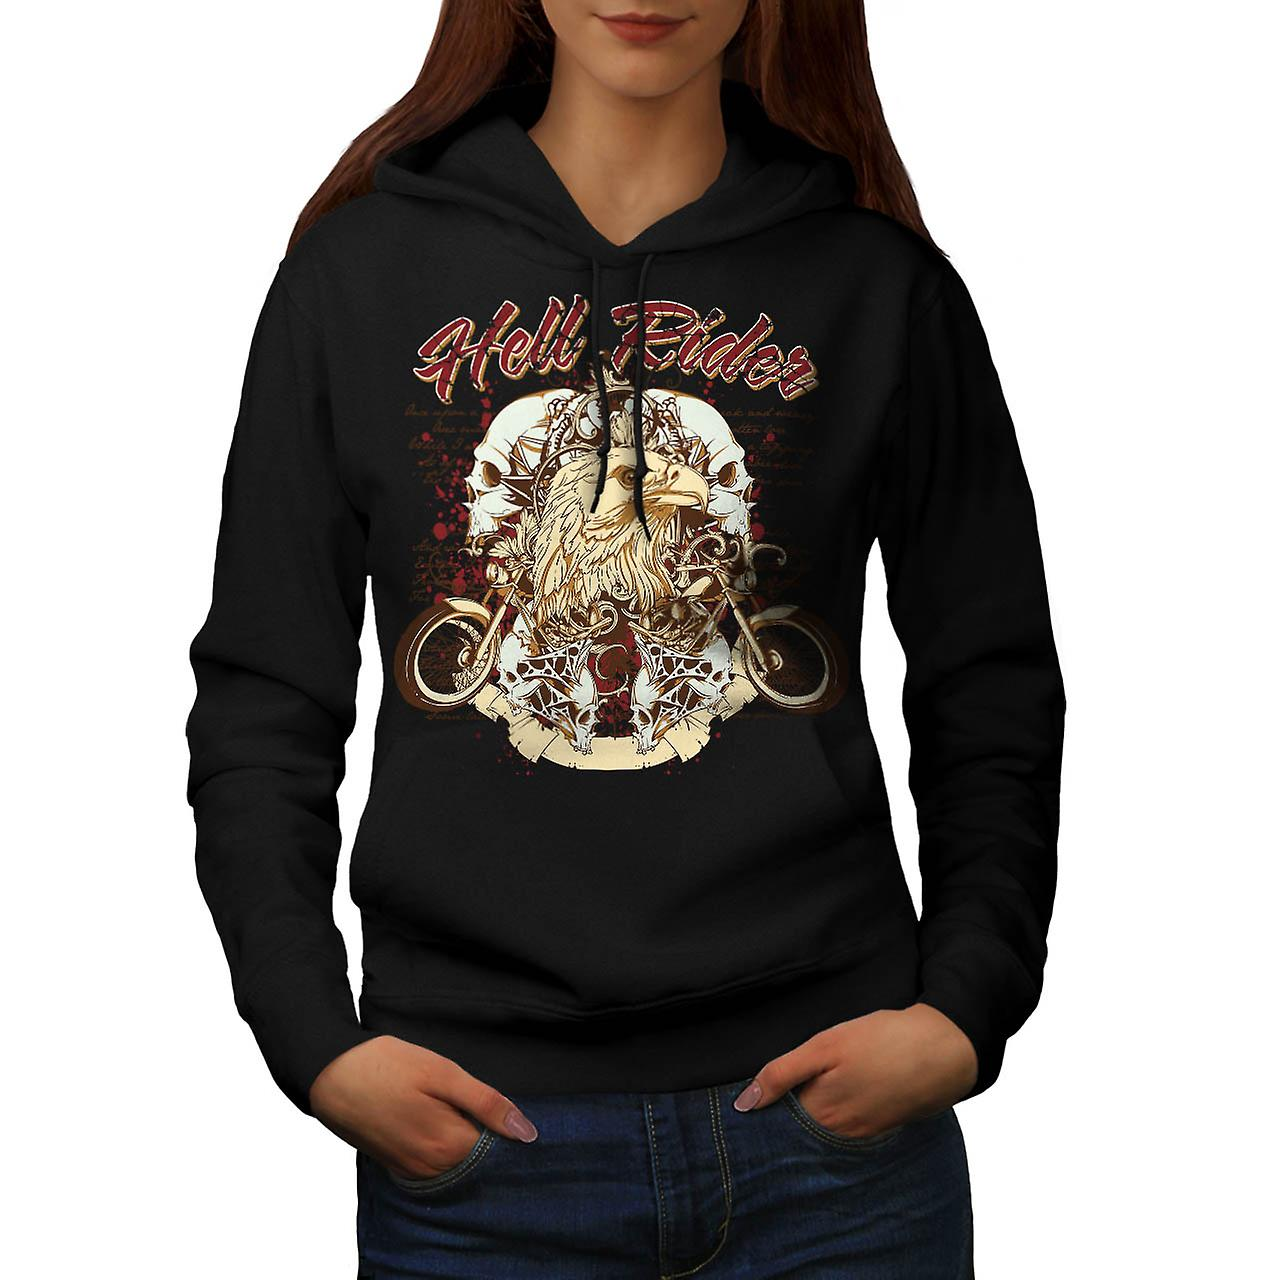 Hell Rider Biker Life Eagle Bike Women Black Hoodie | Wellcoda